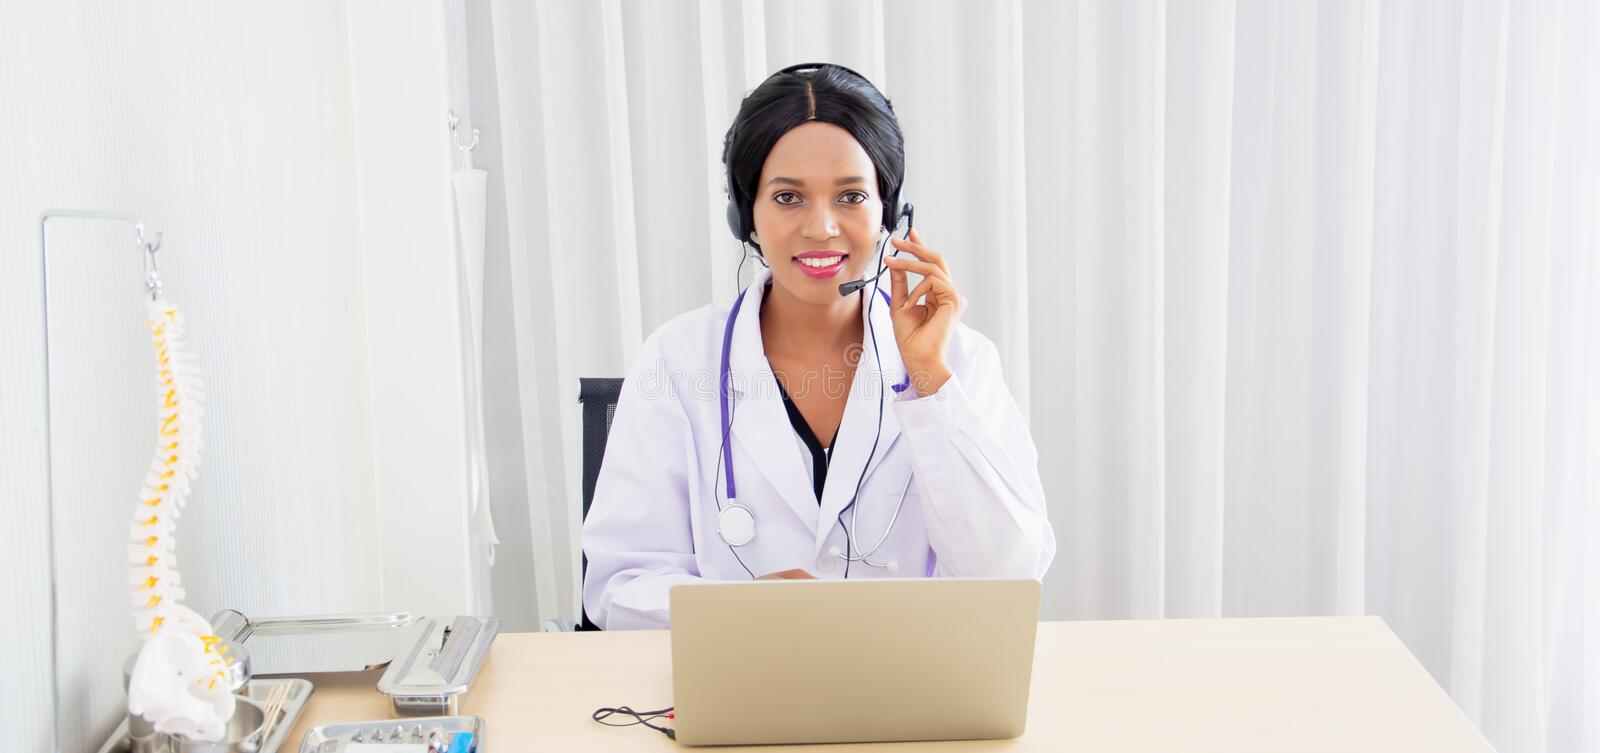 Black female doctor,specialist with sitting desk and headset, consulting health care and disease counseling to patients and public. Online communication from stock photo